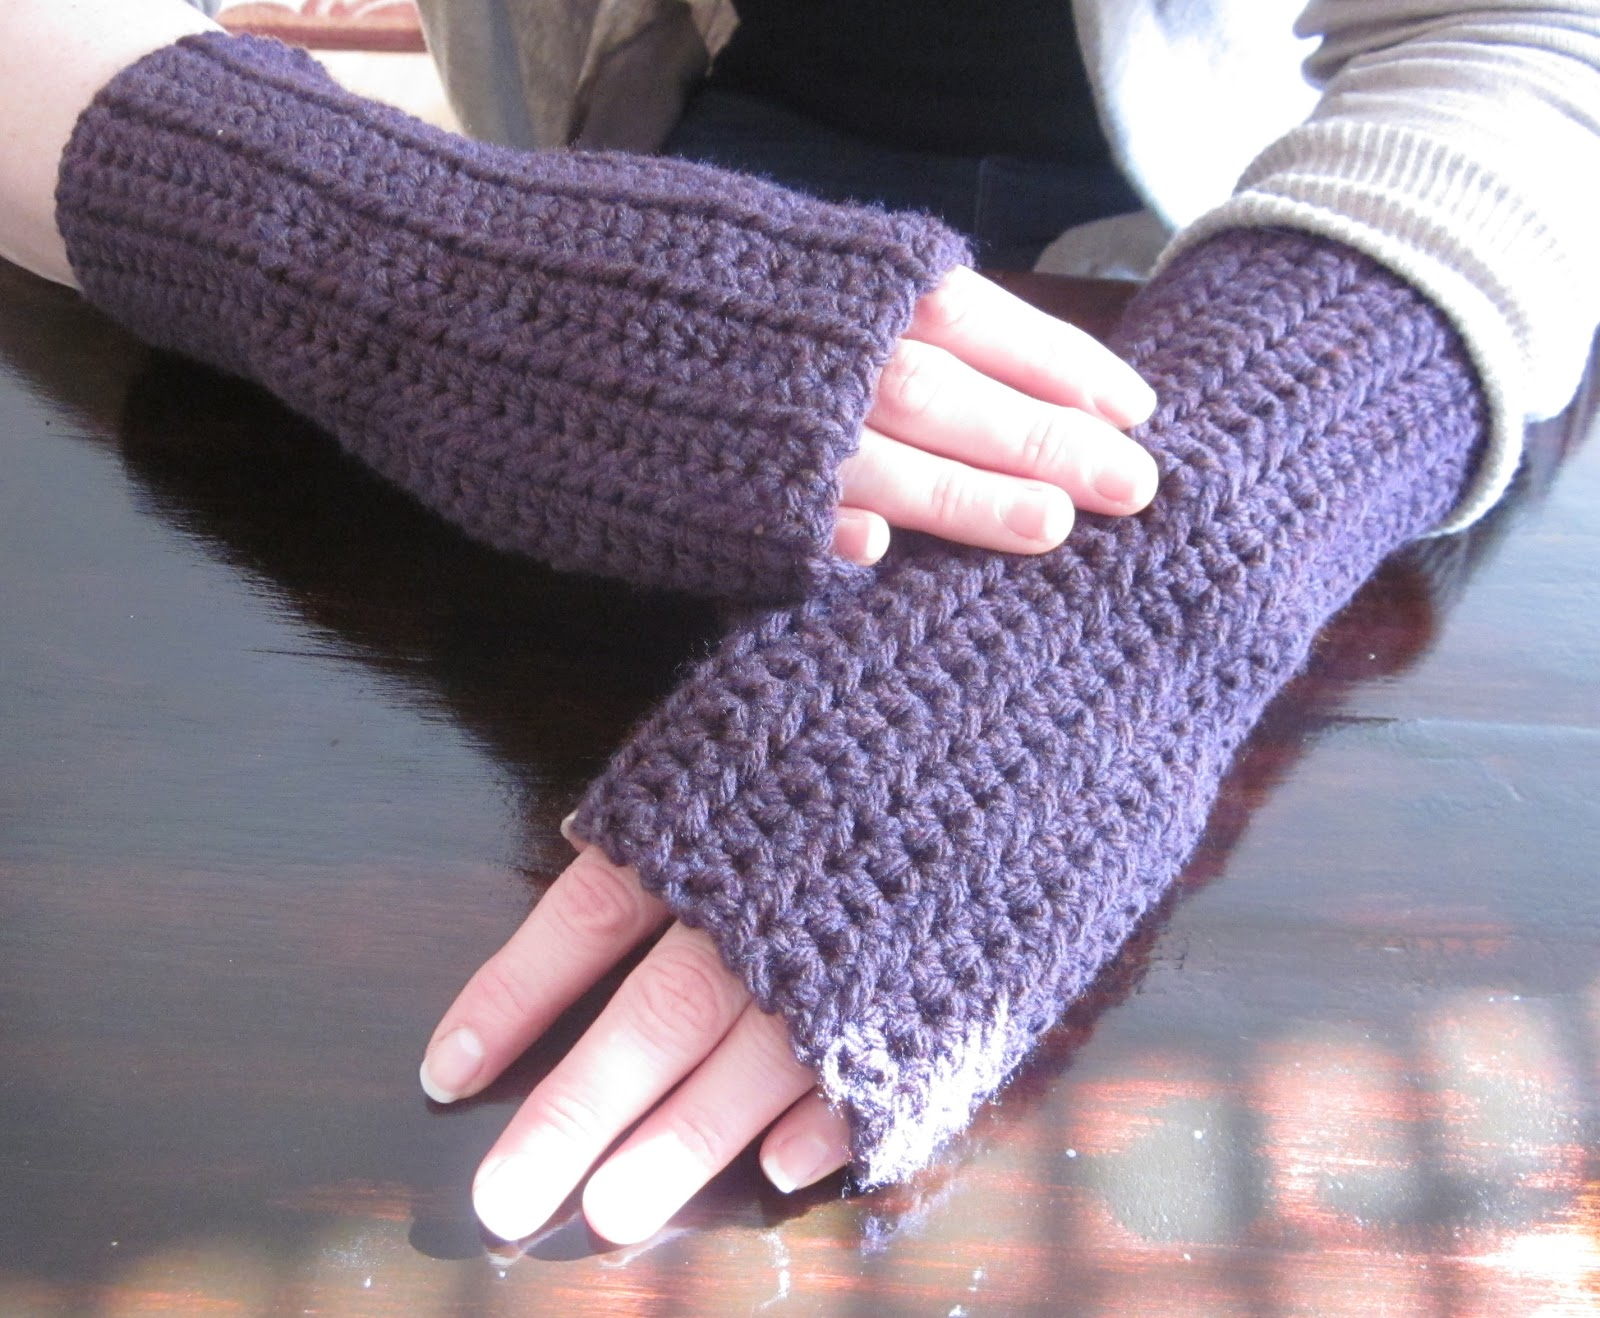 Crochet Fingerless Gloves Tutorials : The Crafty Novice: DIY Crochet: Fingerless Gloves